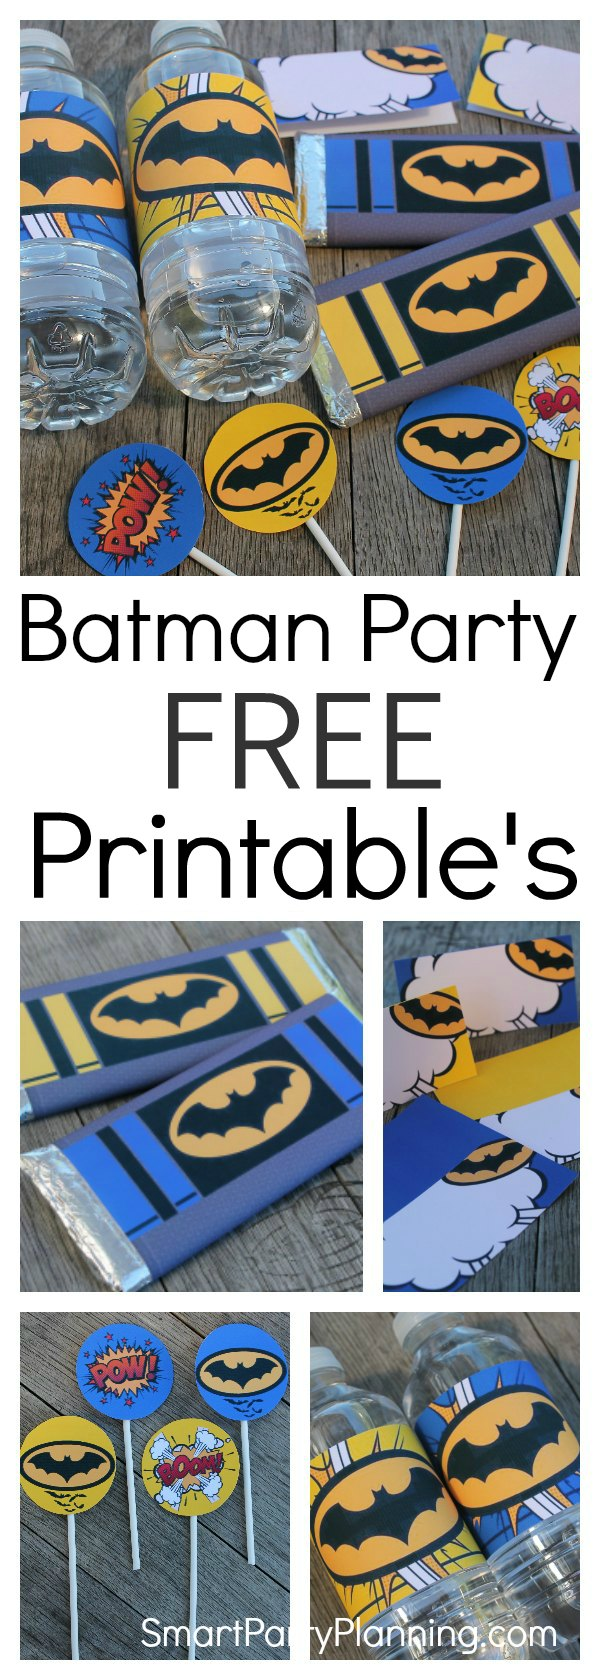 picture about Free Superhero Party Printable named No cost Batman Printables your minimal Superheroes will take pleasure in